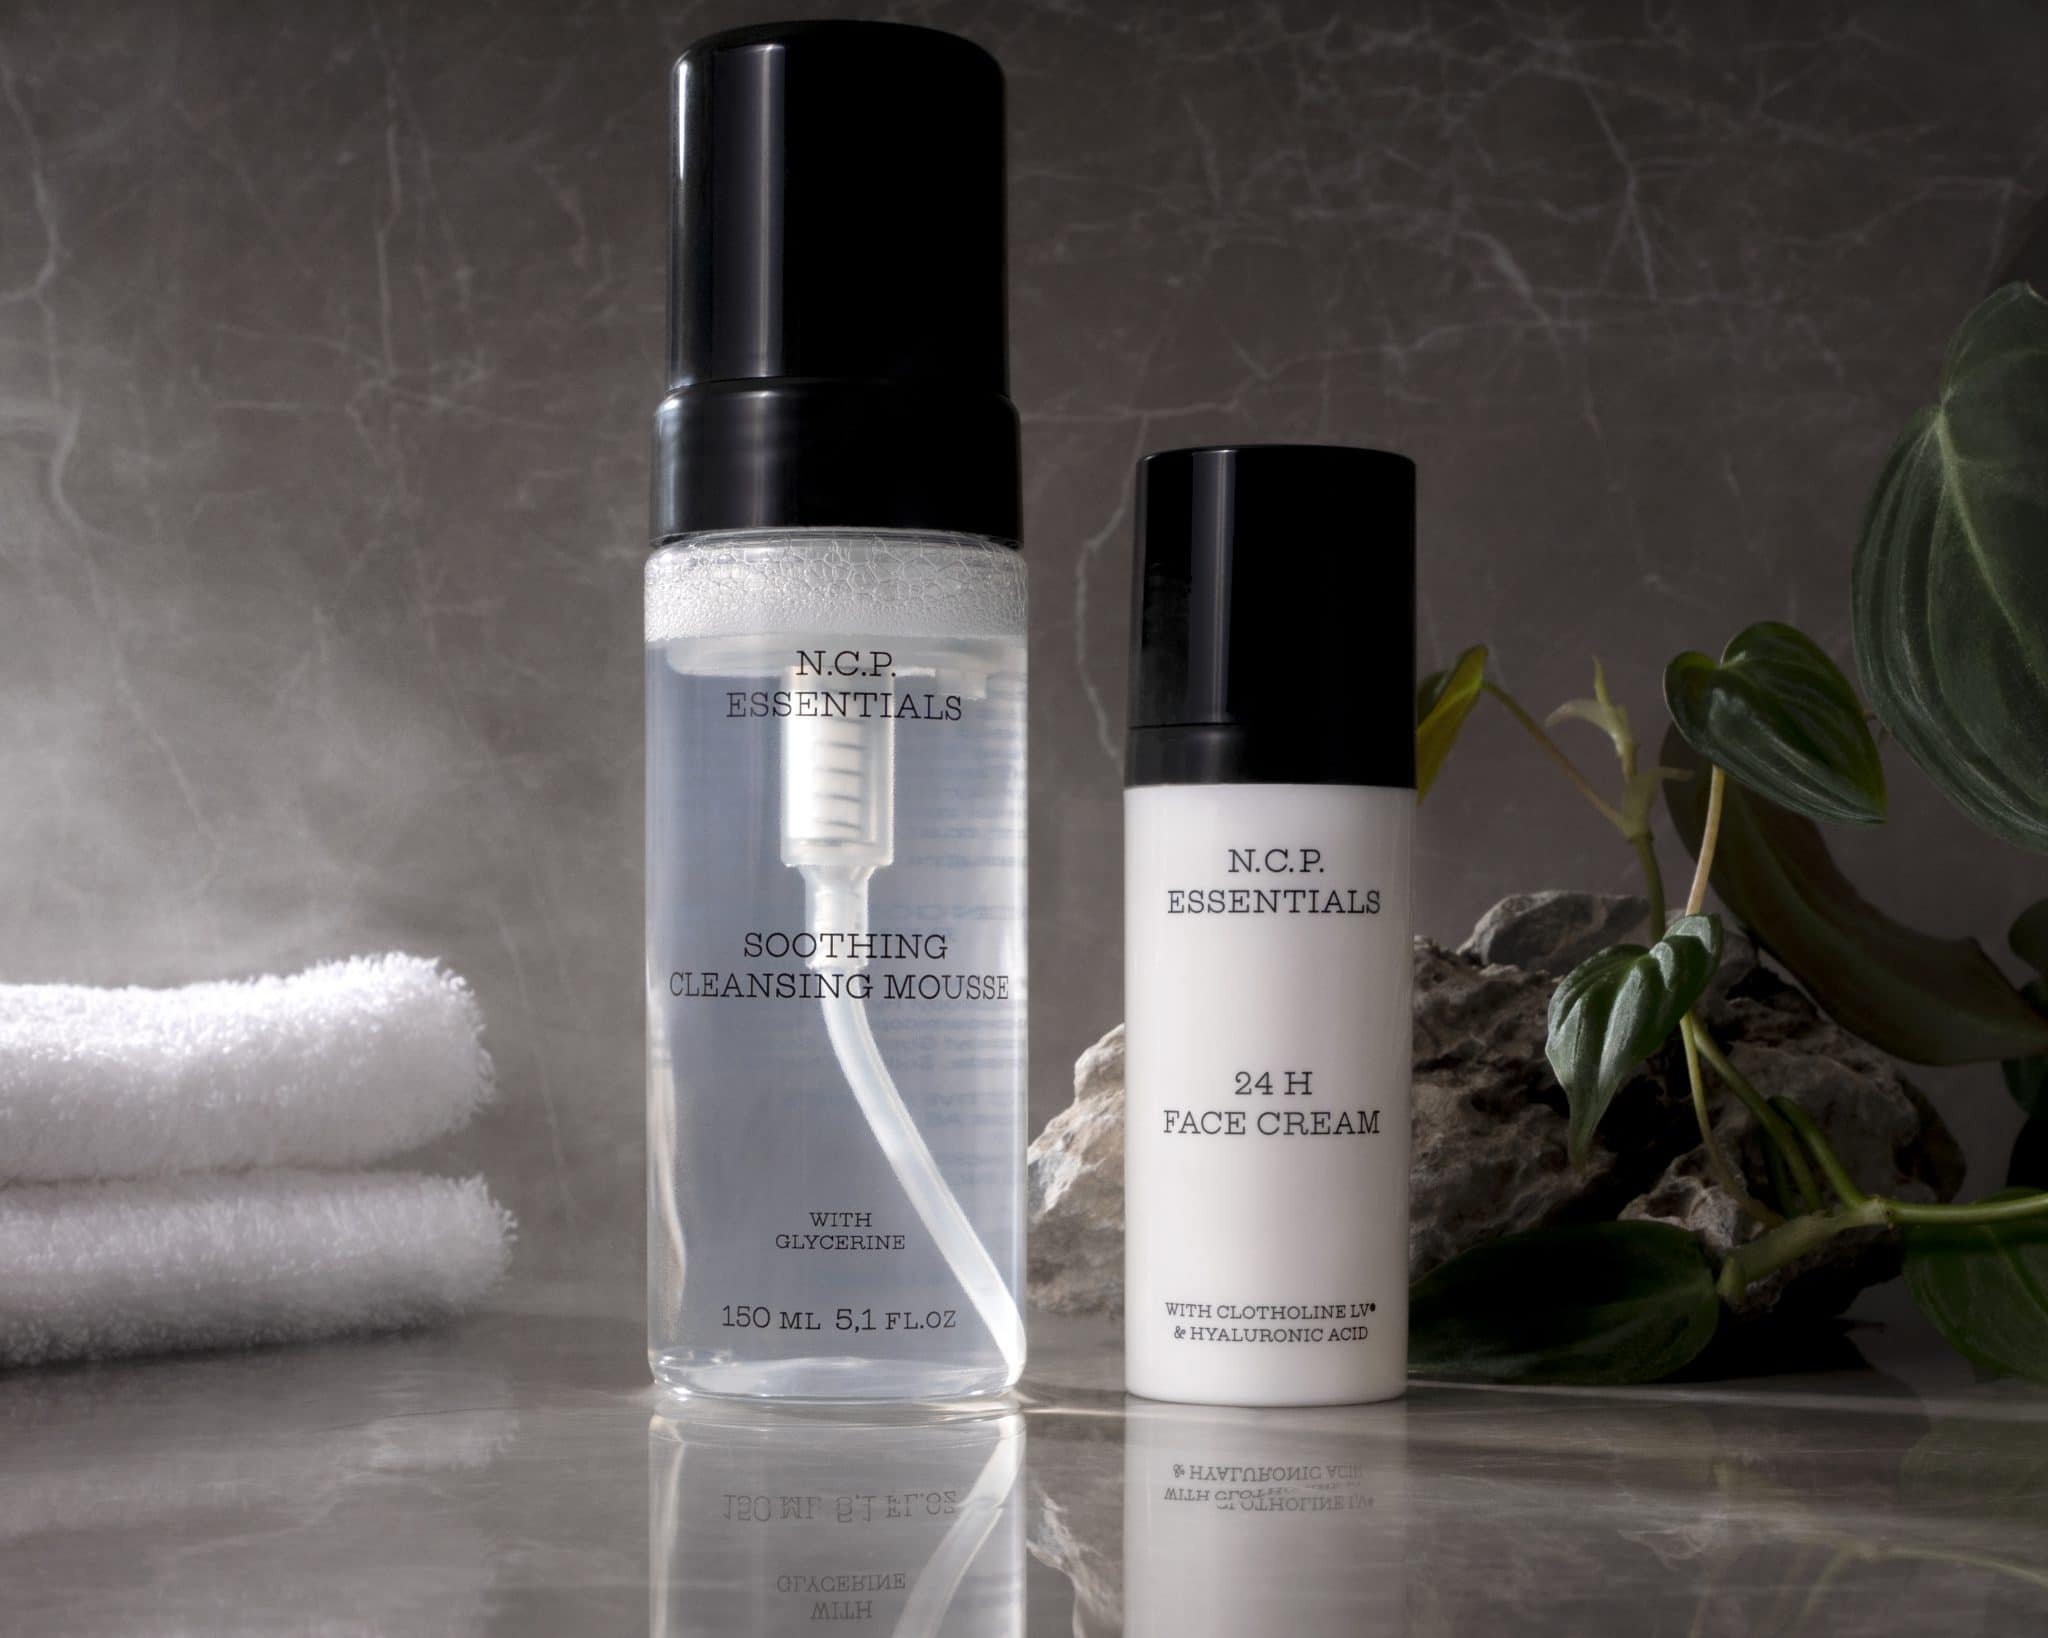 Vegan & fragrance free skincare from N.C.P. Clean & Care kit with Soothing Cleansing Mousse a transparent bottle with a black cap and 24 H Face Cream a white bottle with black text and black cap.White towel and green leafs